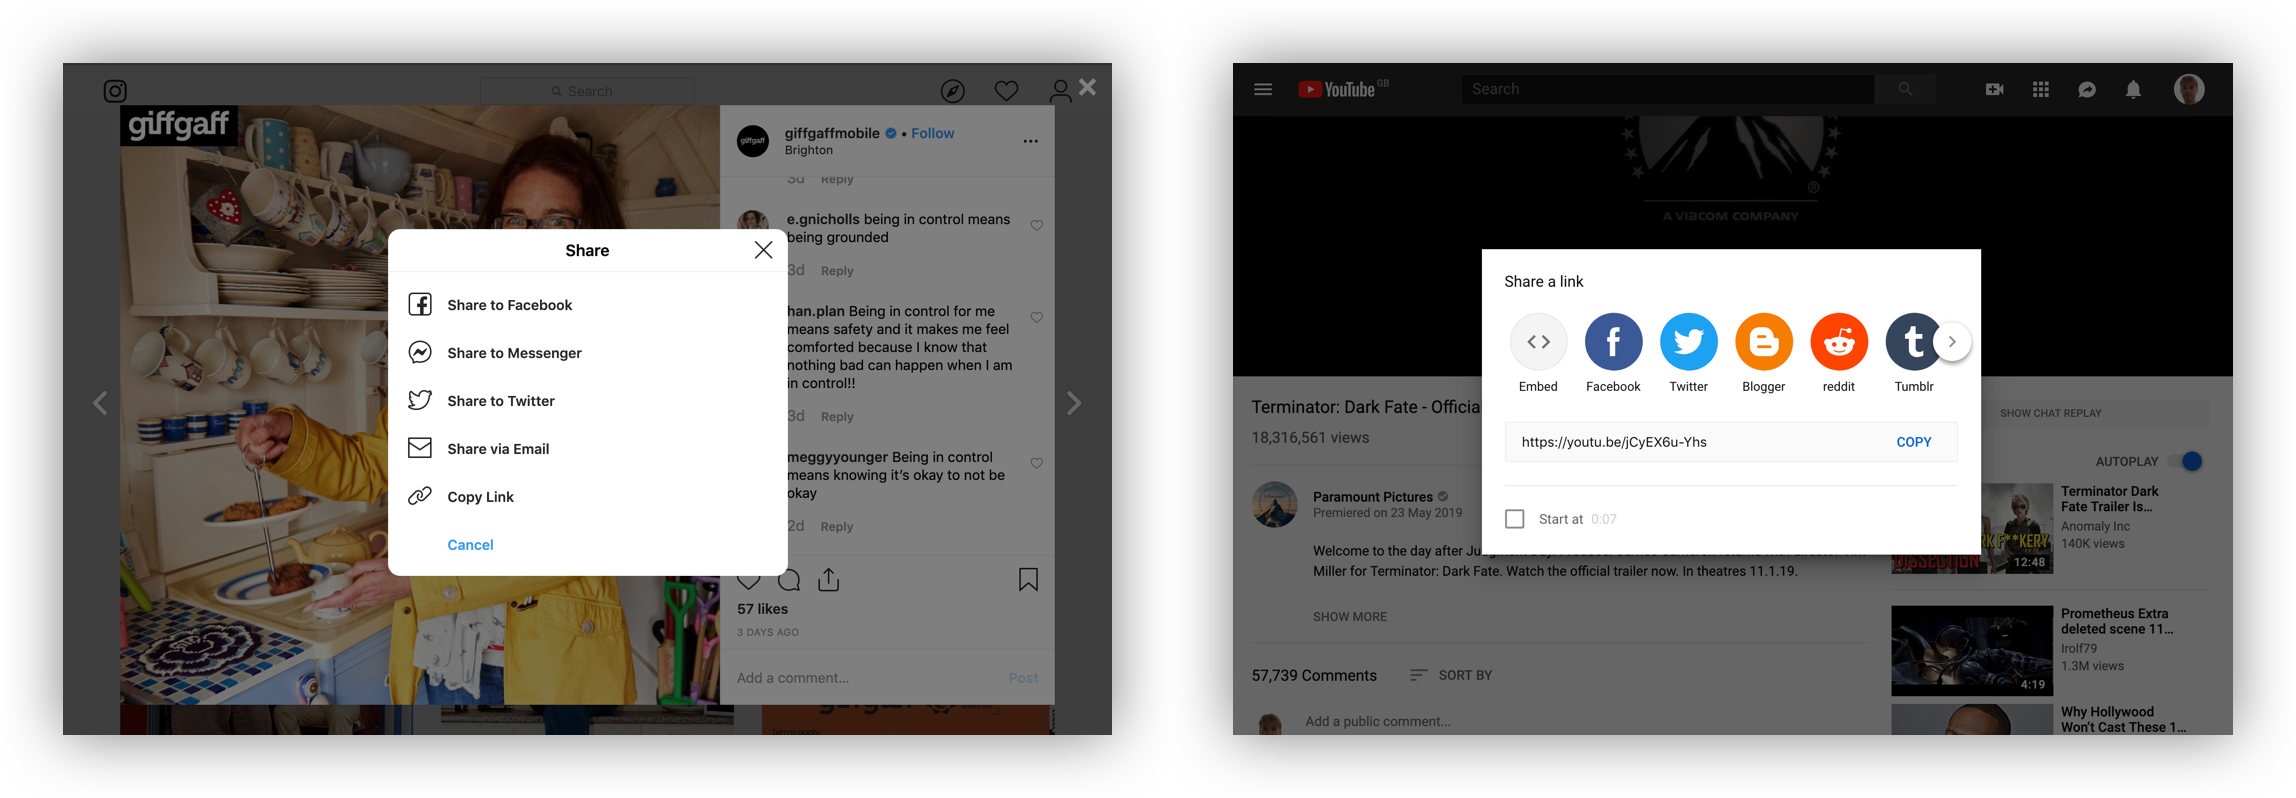 Comparing Instagram and YouTube share options on desktop.